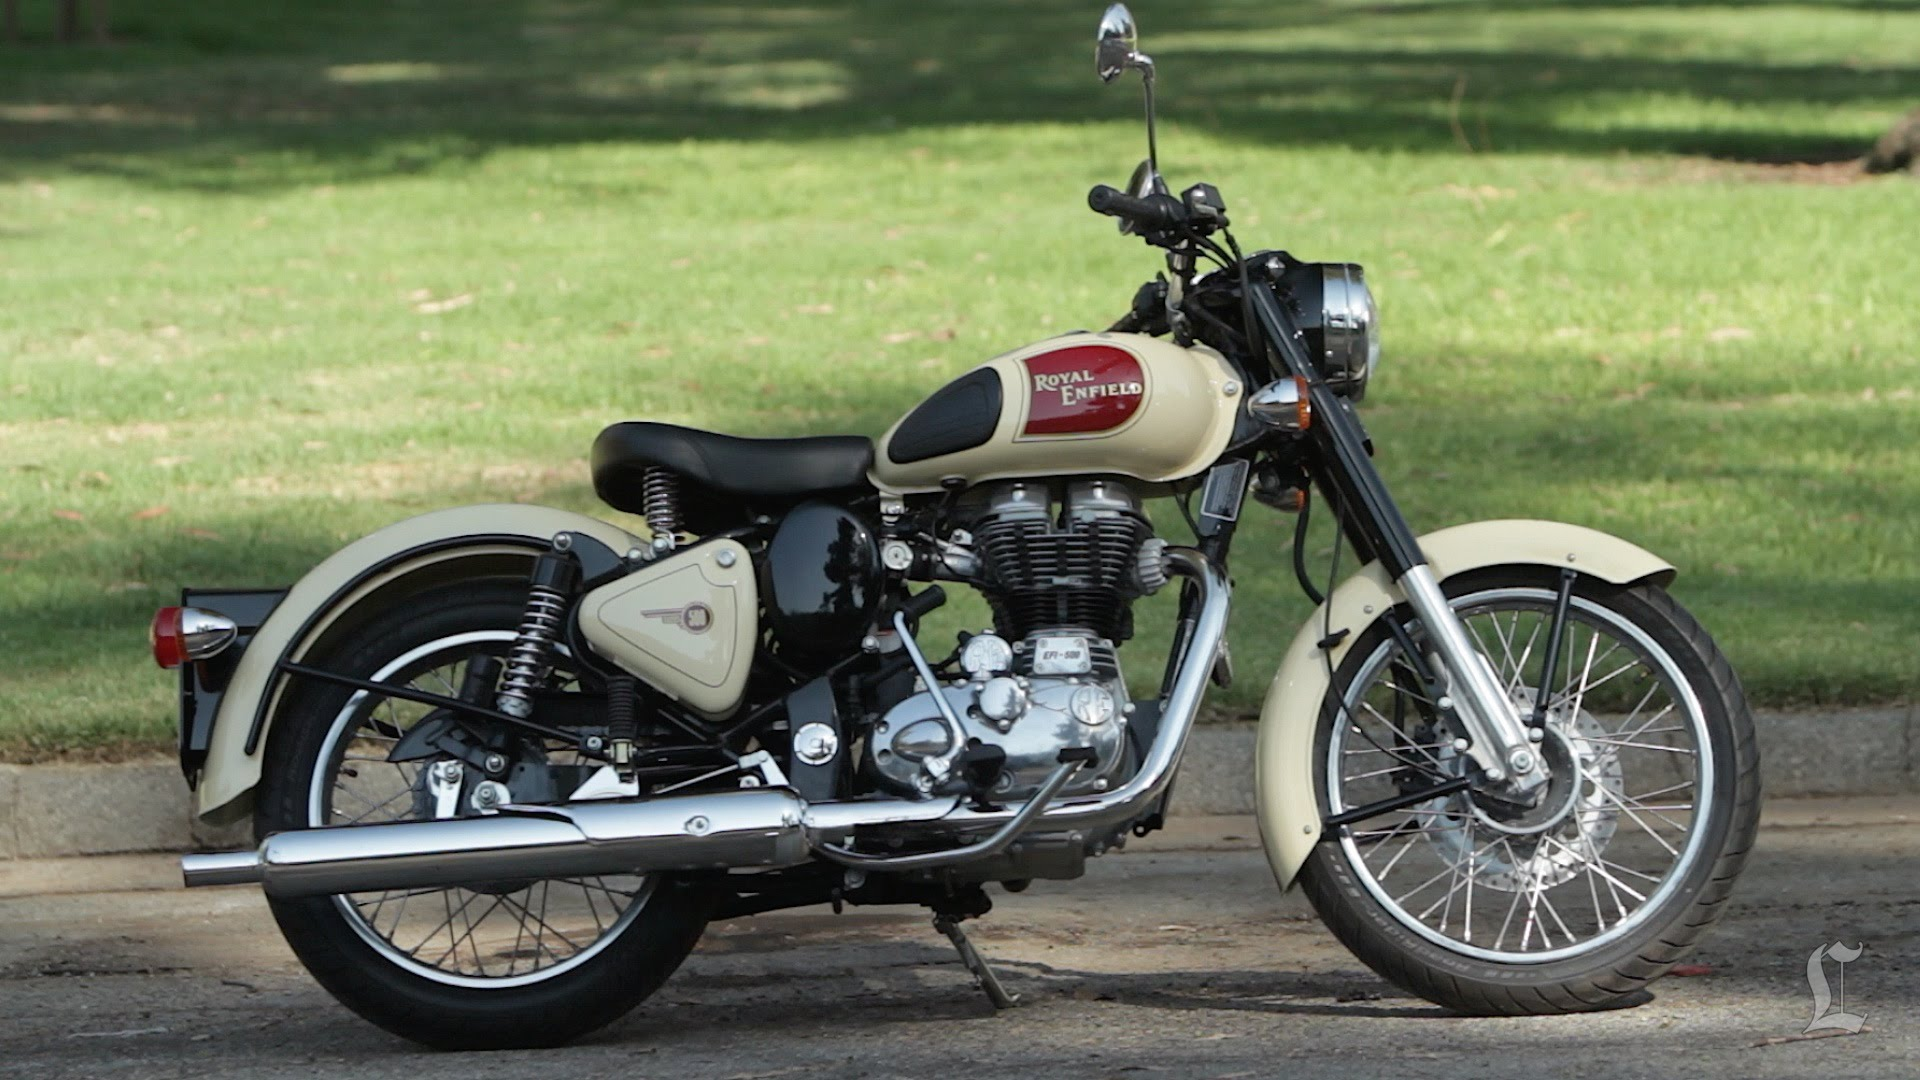 2010 Enfield Classic 500 #8